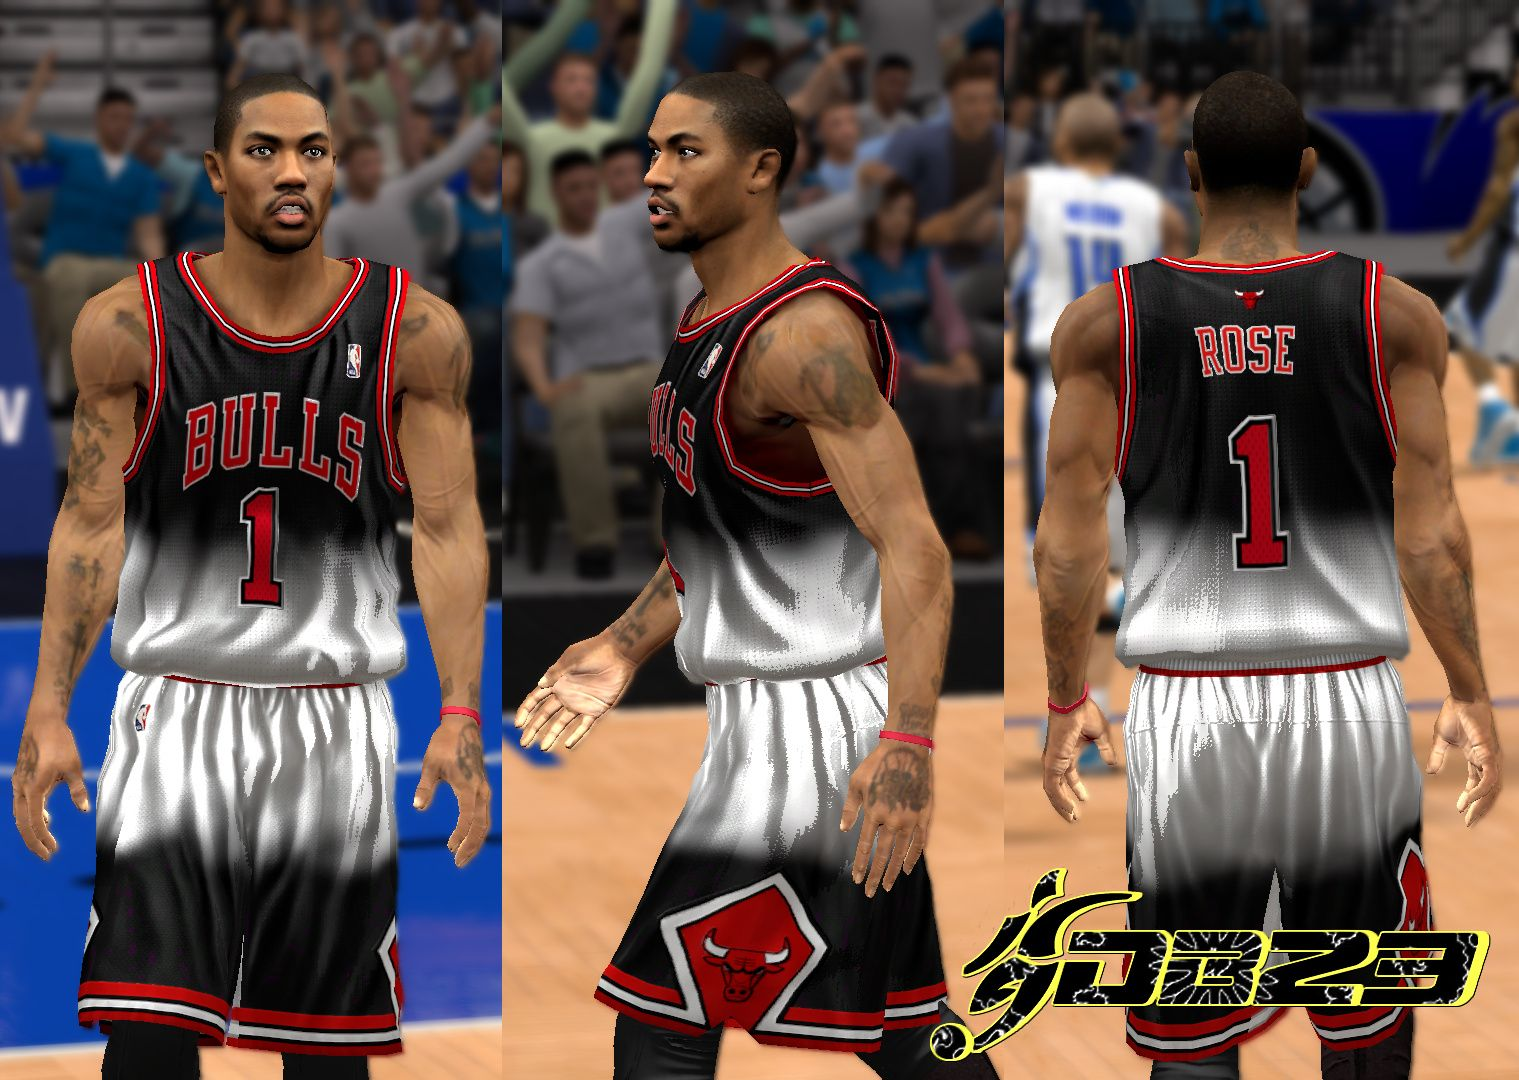 d0e836ae26f Chicago Bulls MEGA Jersey Pack - NBA 2K14 at ModdingWay